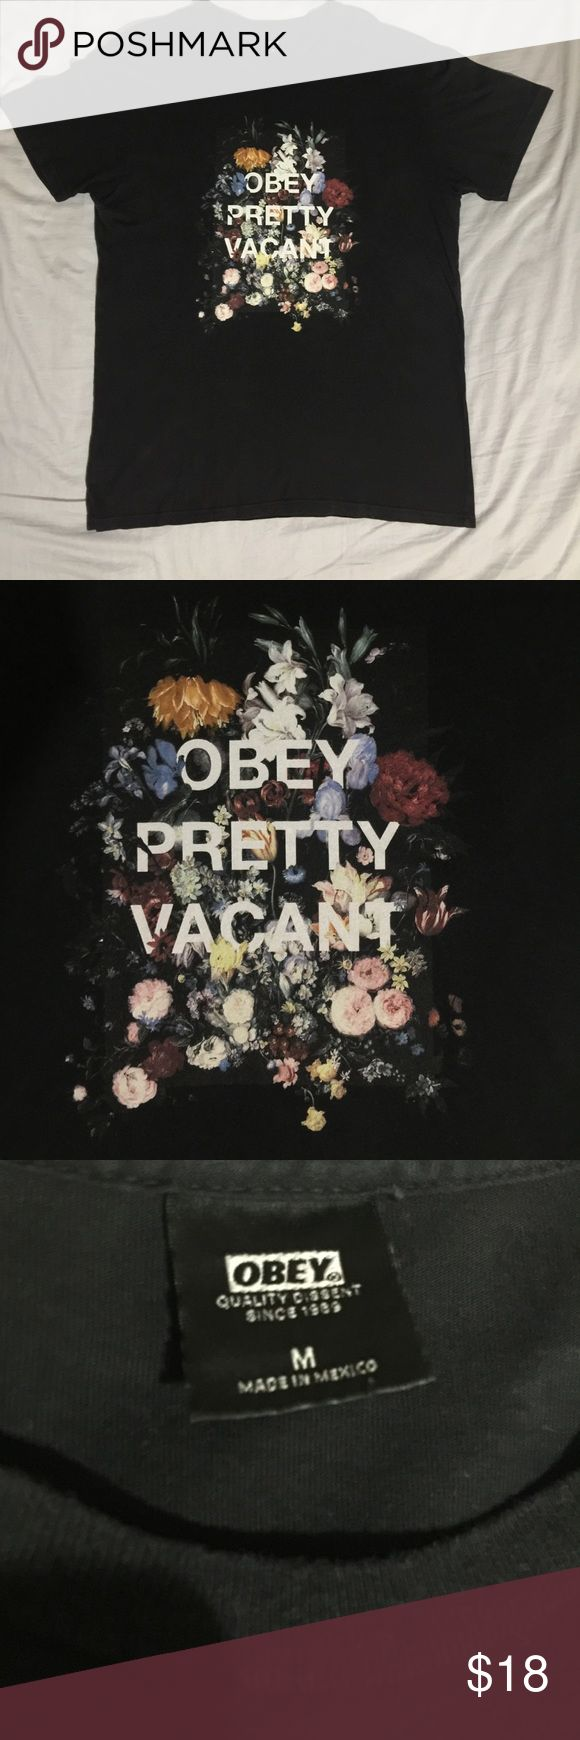 "Obey tee shirt Obey black floral tee shirt ""OBEY PRETTY VACANT"". Dope shirt to combine with different shoe colors. 100% cotton. from Pacsun. as usual; Washed, dried and ironed before shipping. PacSun Shirts Tees - Short Sleeve"